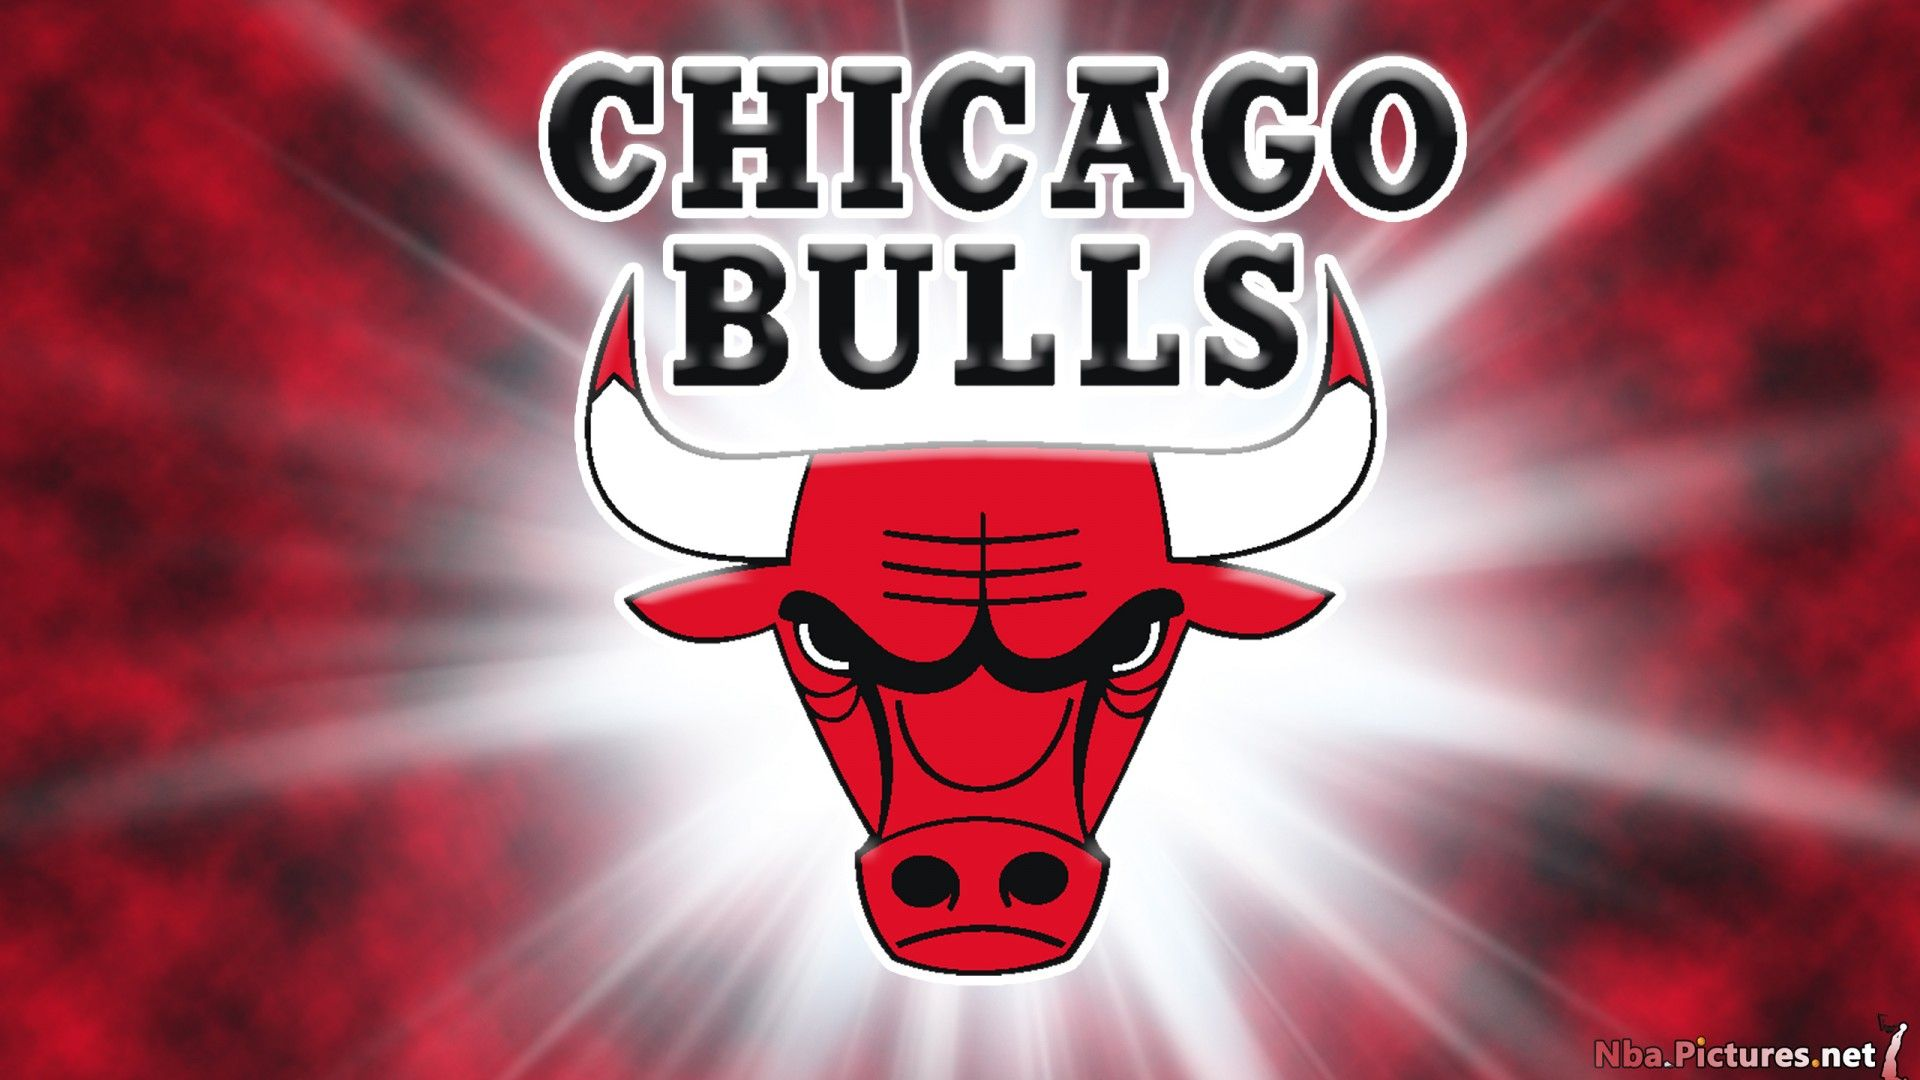 Are You Really A Bulls Fan Chicago Bulls Logo Chicago Bulls Chicago Bulls Wallpaper